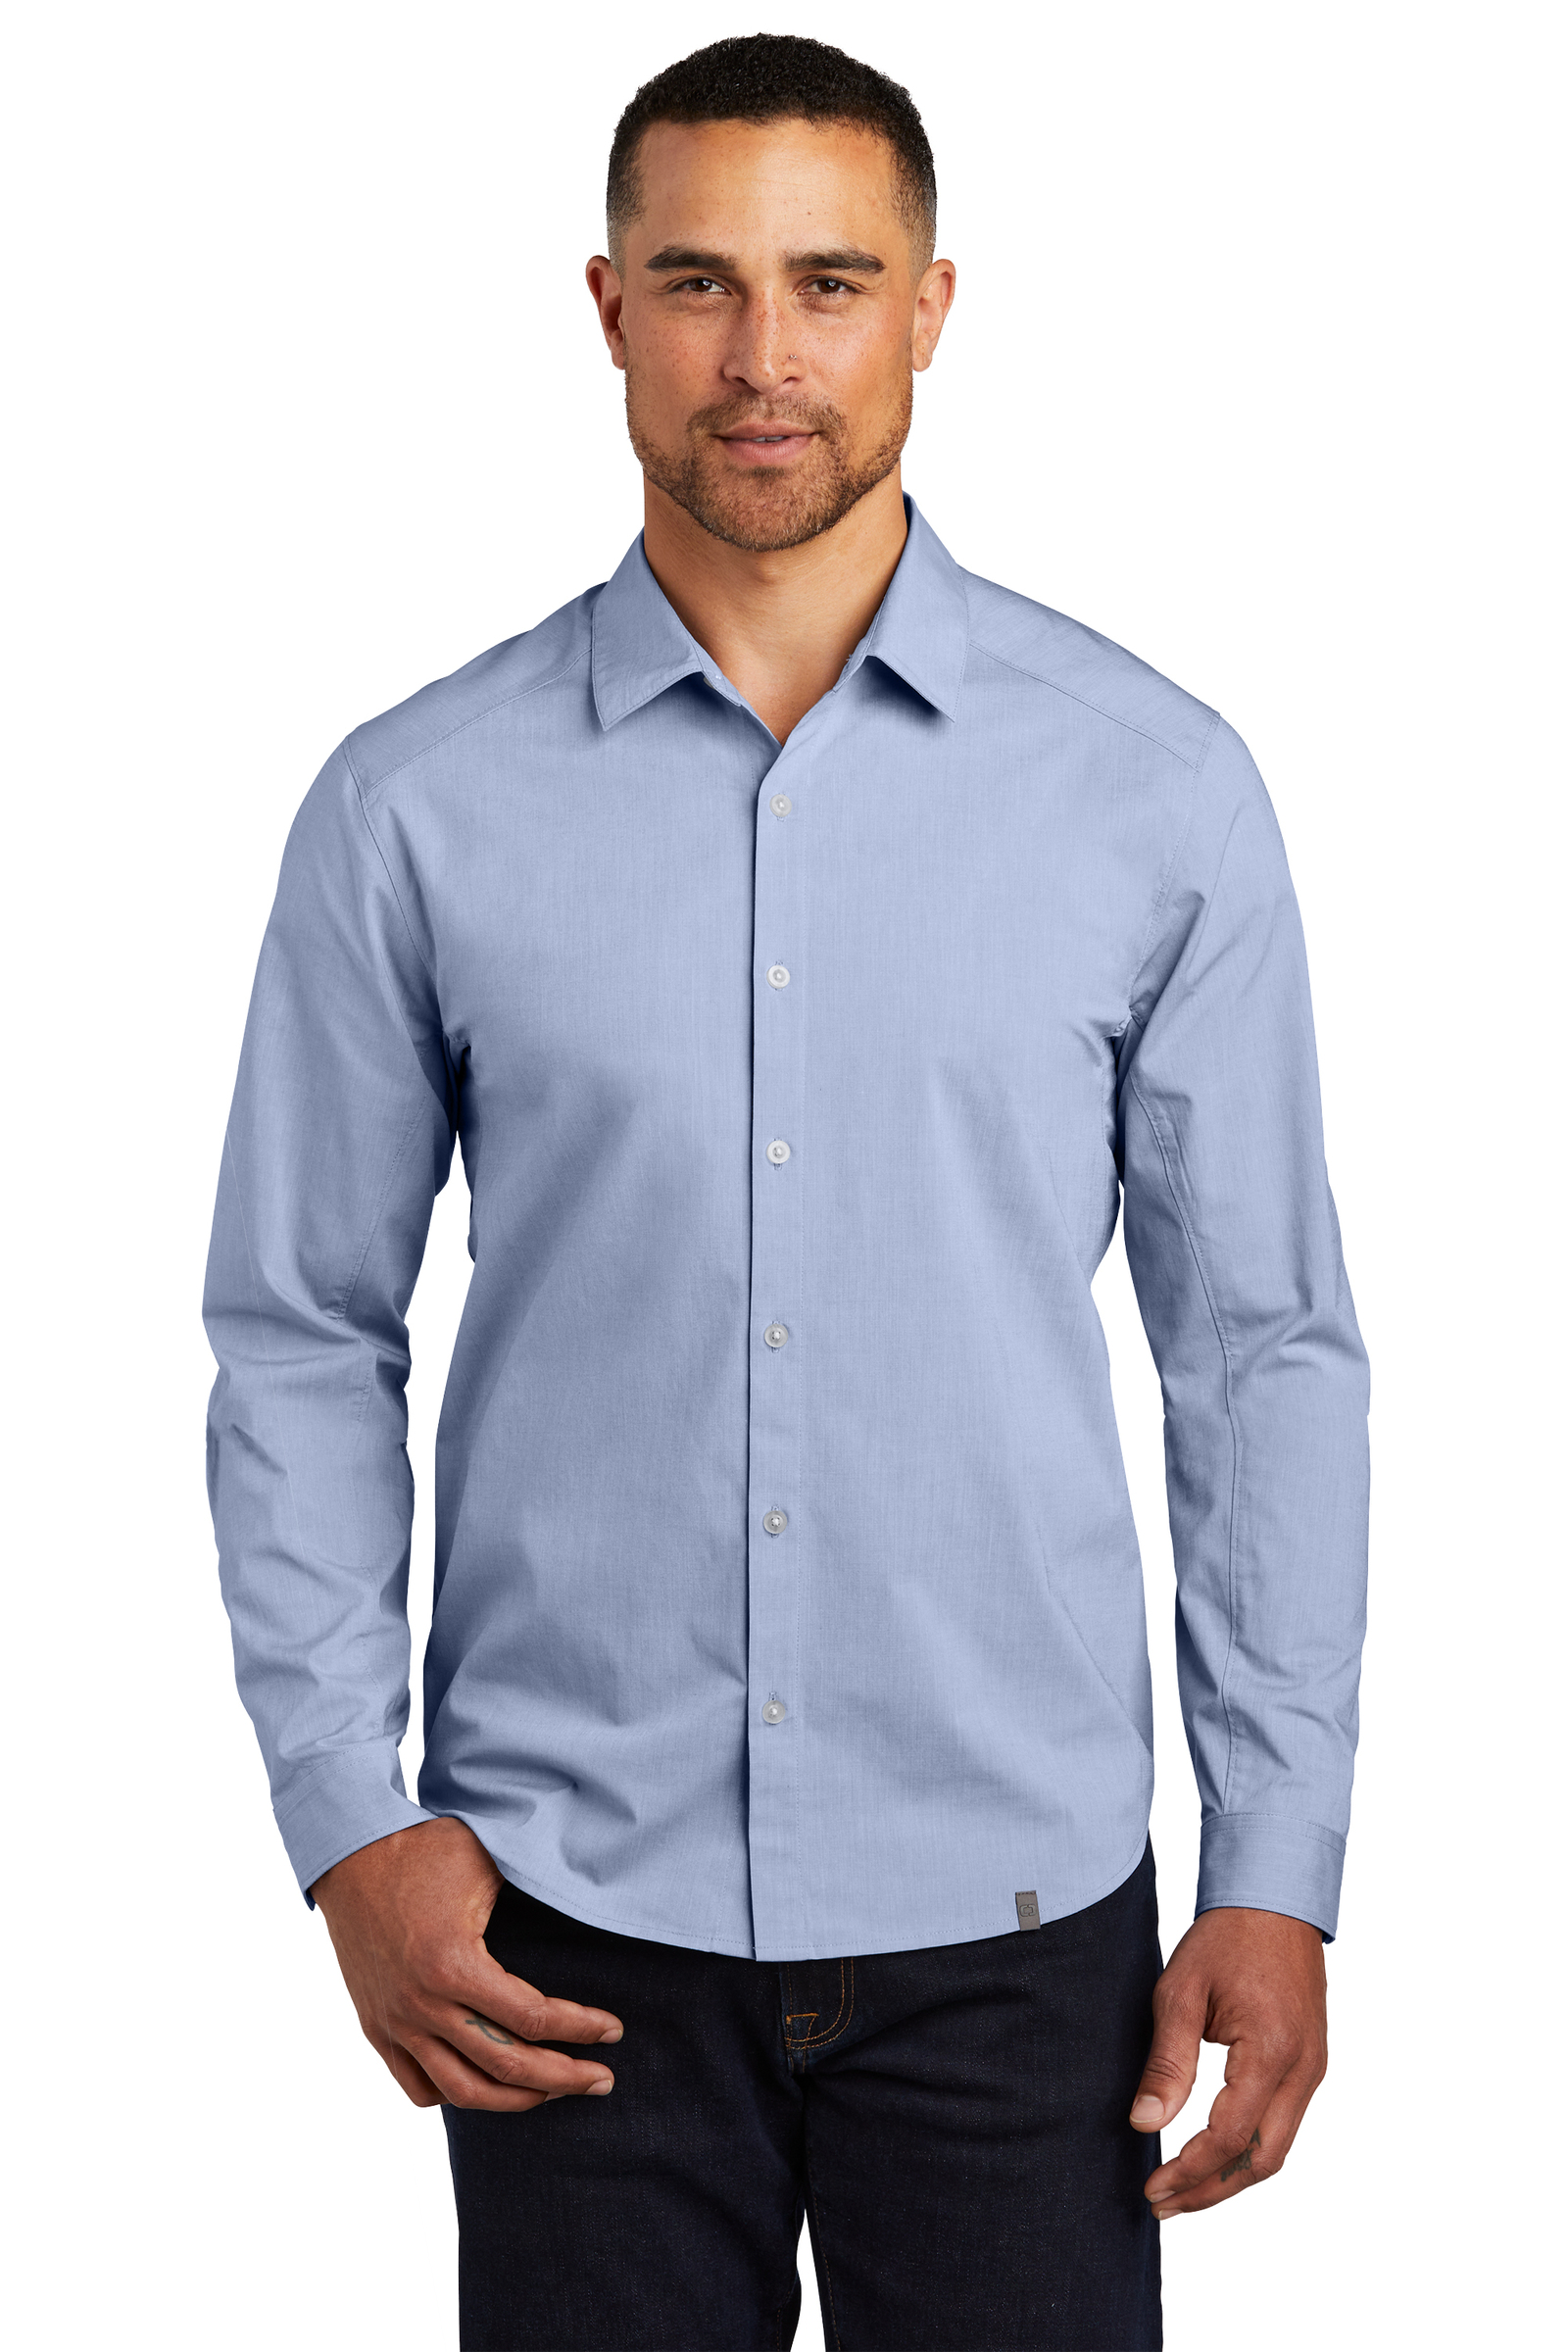 OGIO Embroidered Men's Commuter Woven Shirt